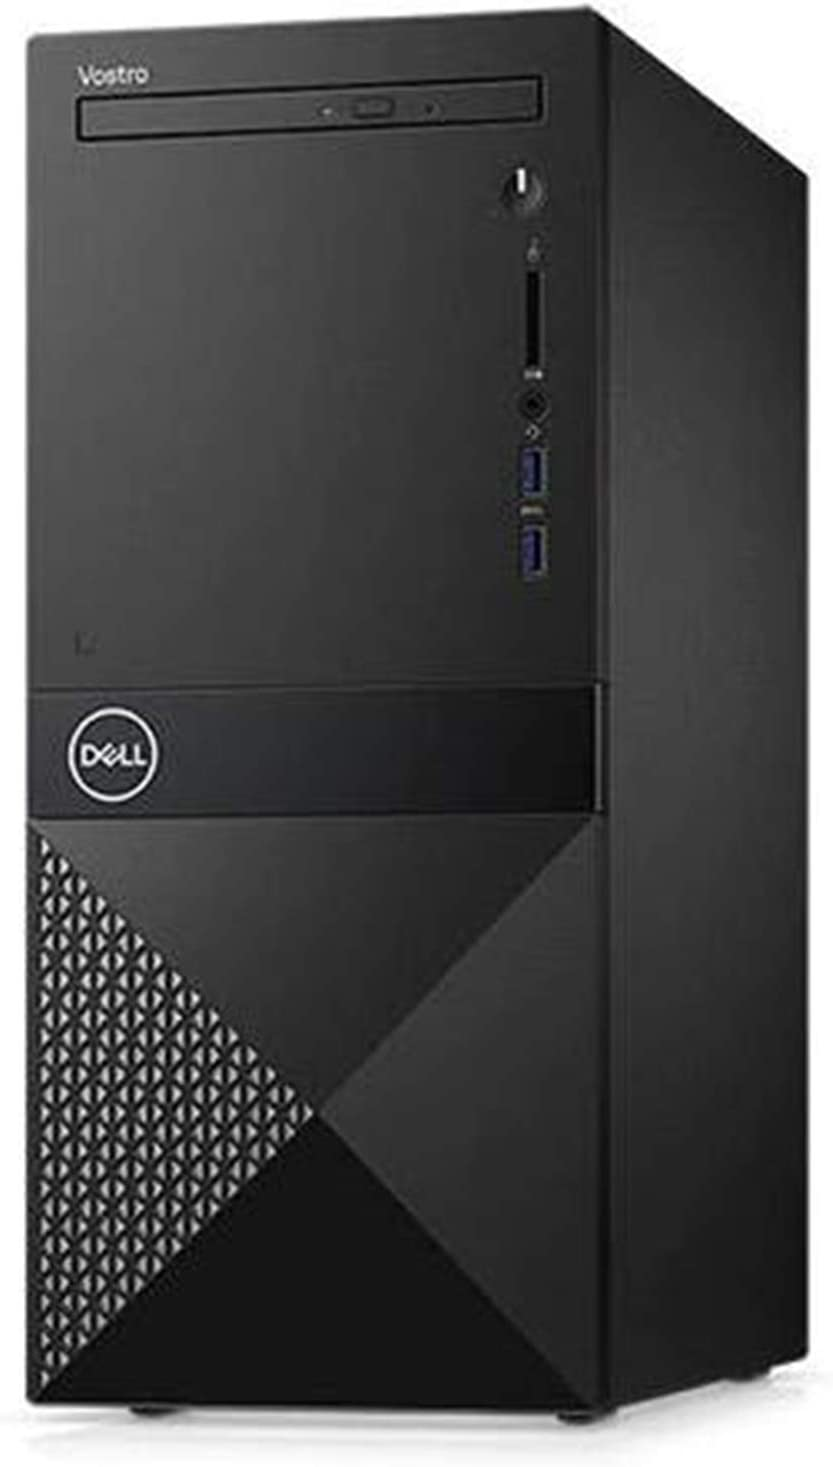 2019 Dell Vostro 3000 Business Desktop Computer 9th Gen Intel Hexa-Core i5-9400 up to 4.1GHz 8GB DDR4 RAM 256GB PCIe SSD DVDRW 802.11bgn WiFi Bluetooth USB 3.0 HDMI Windows 10 Pro